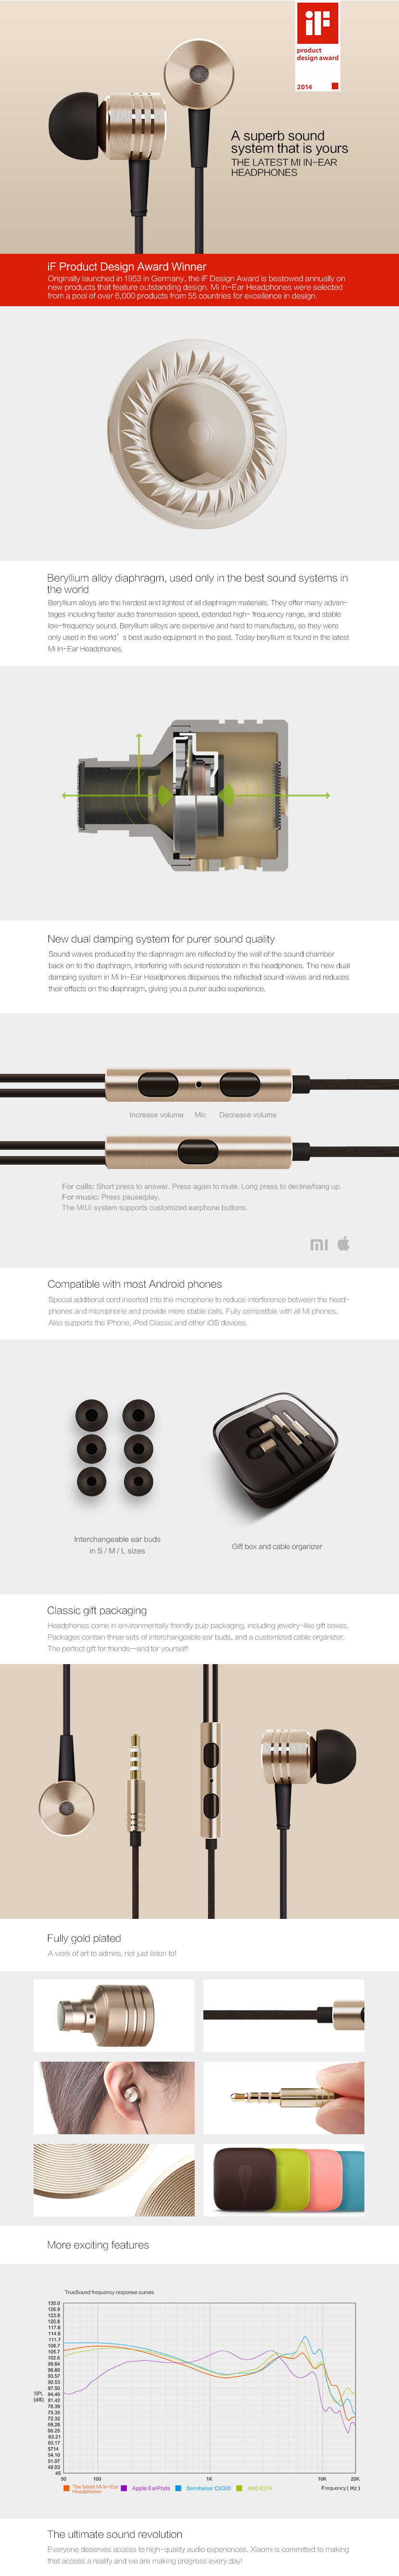 xiaomi ear phone in ear headphone